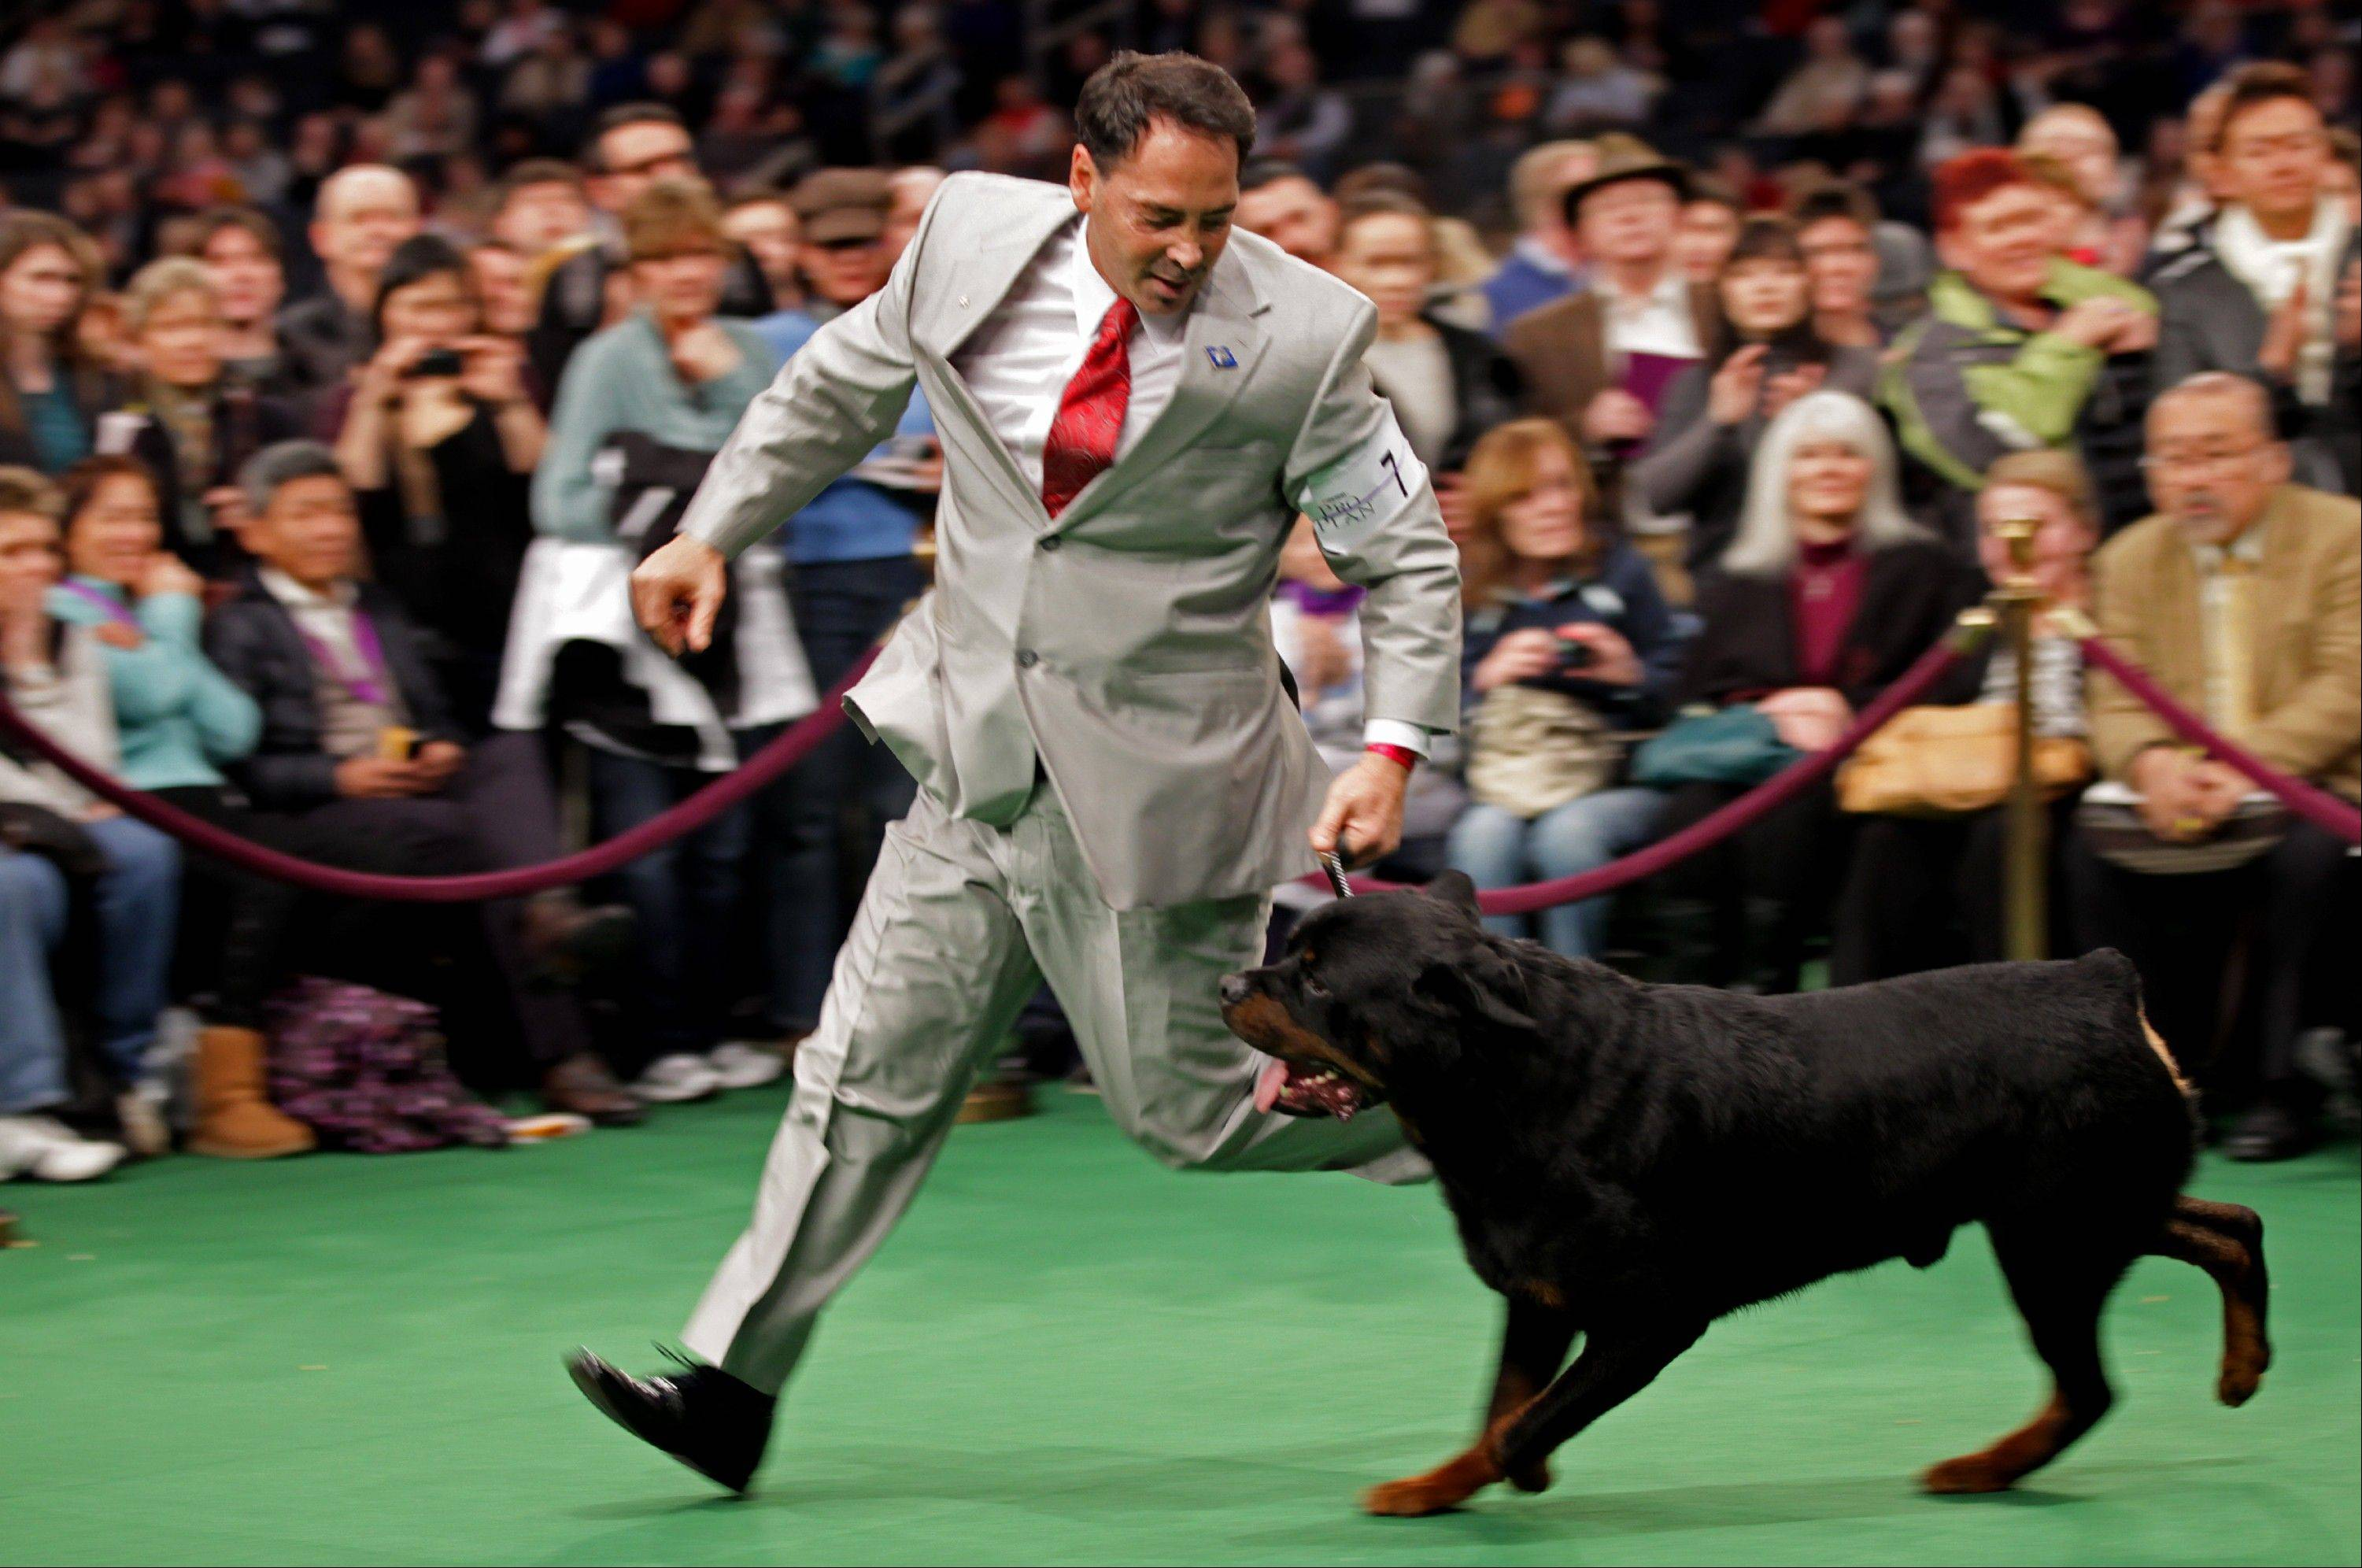 Perry Payson, of Bixby, Okla., handles Pilot, 3, a Rottweiler. Pilot won best of breed.